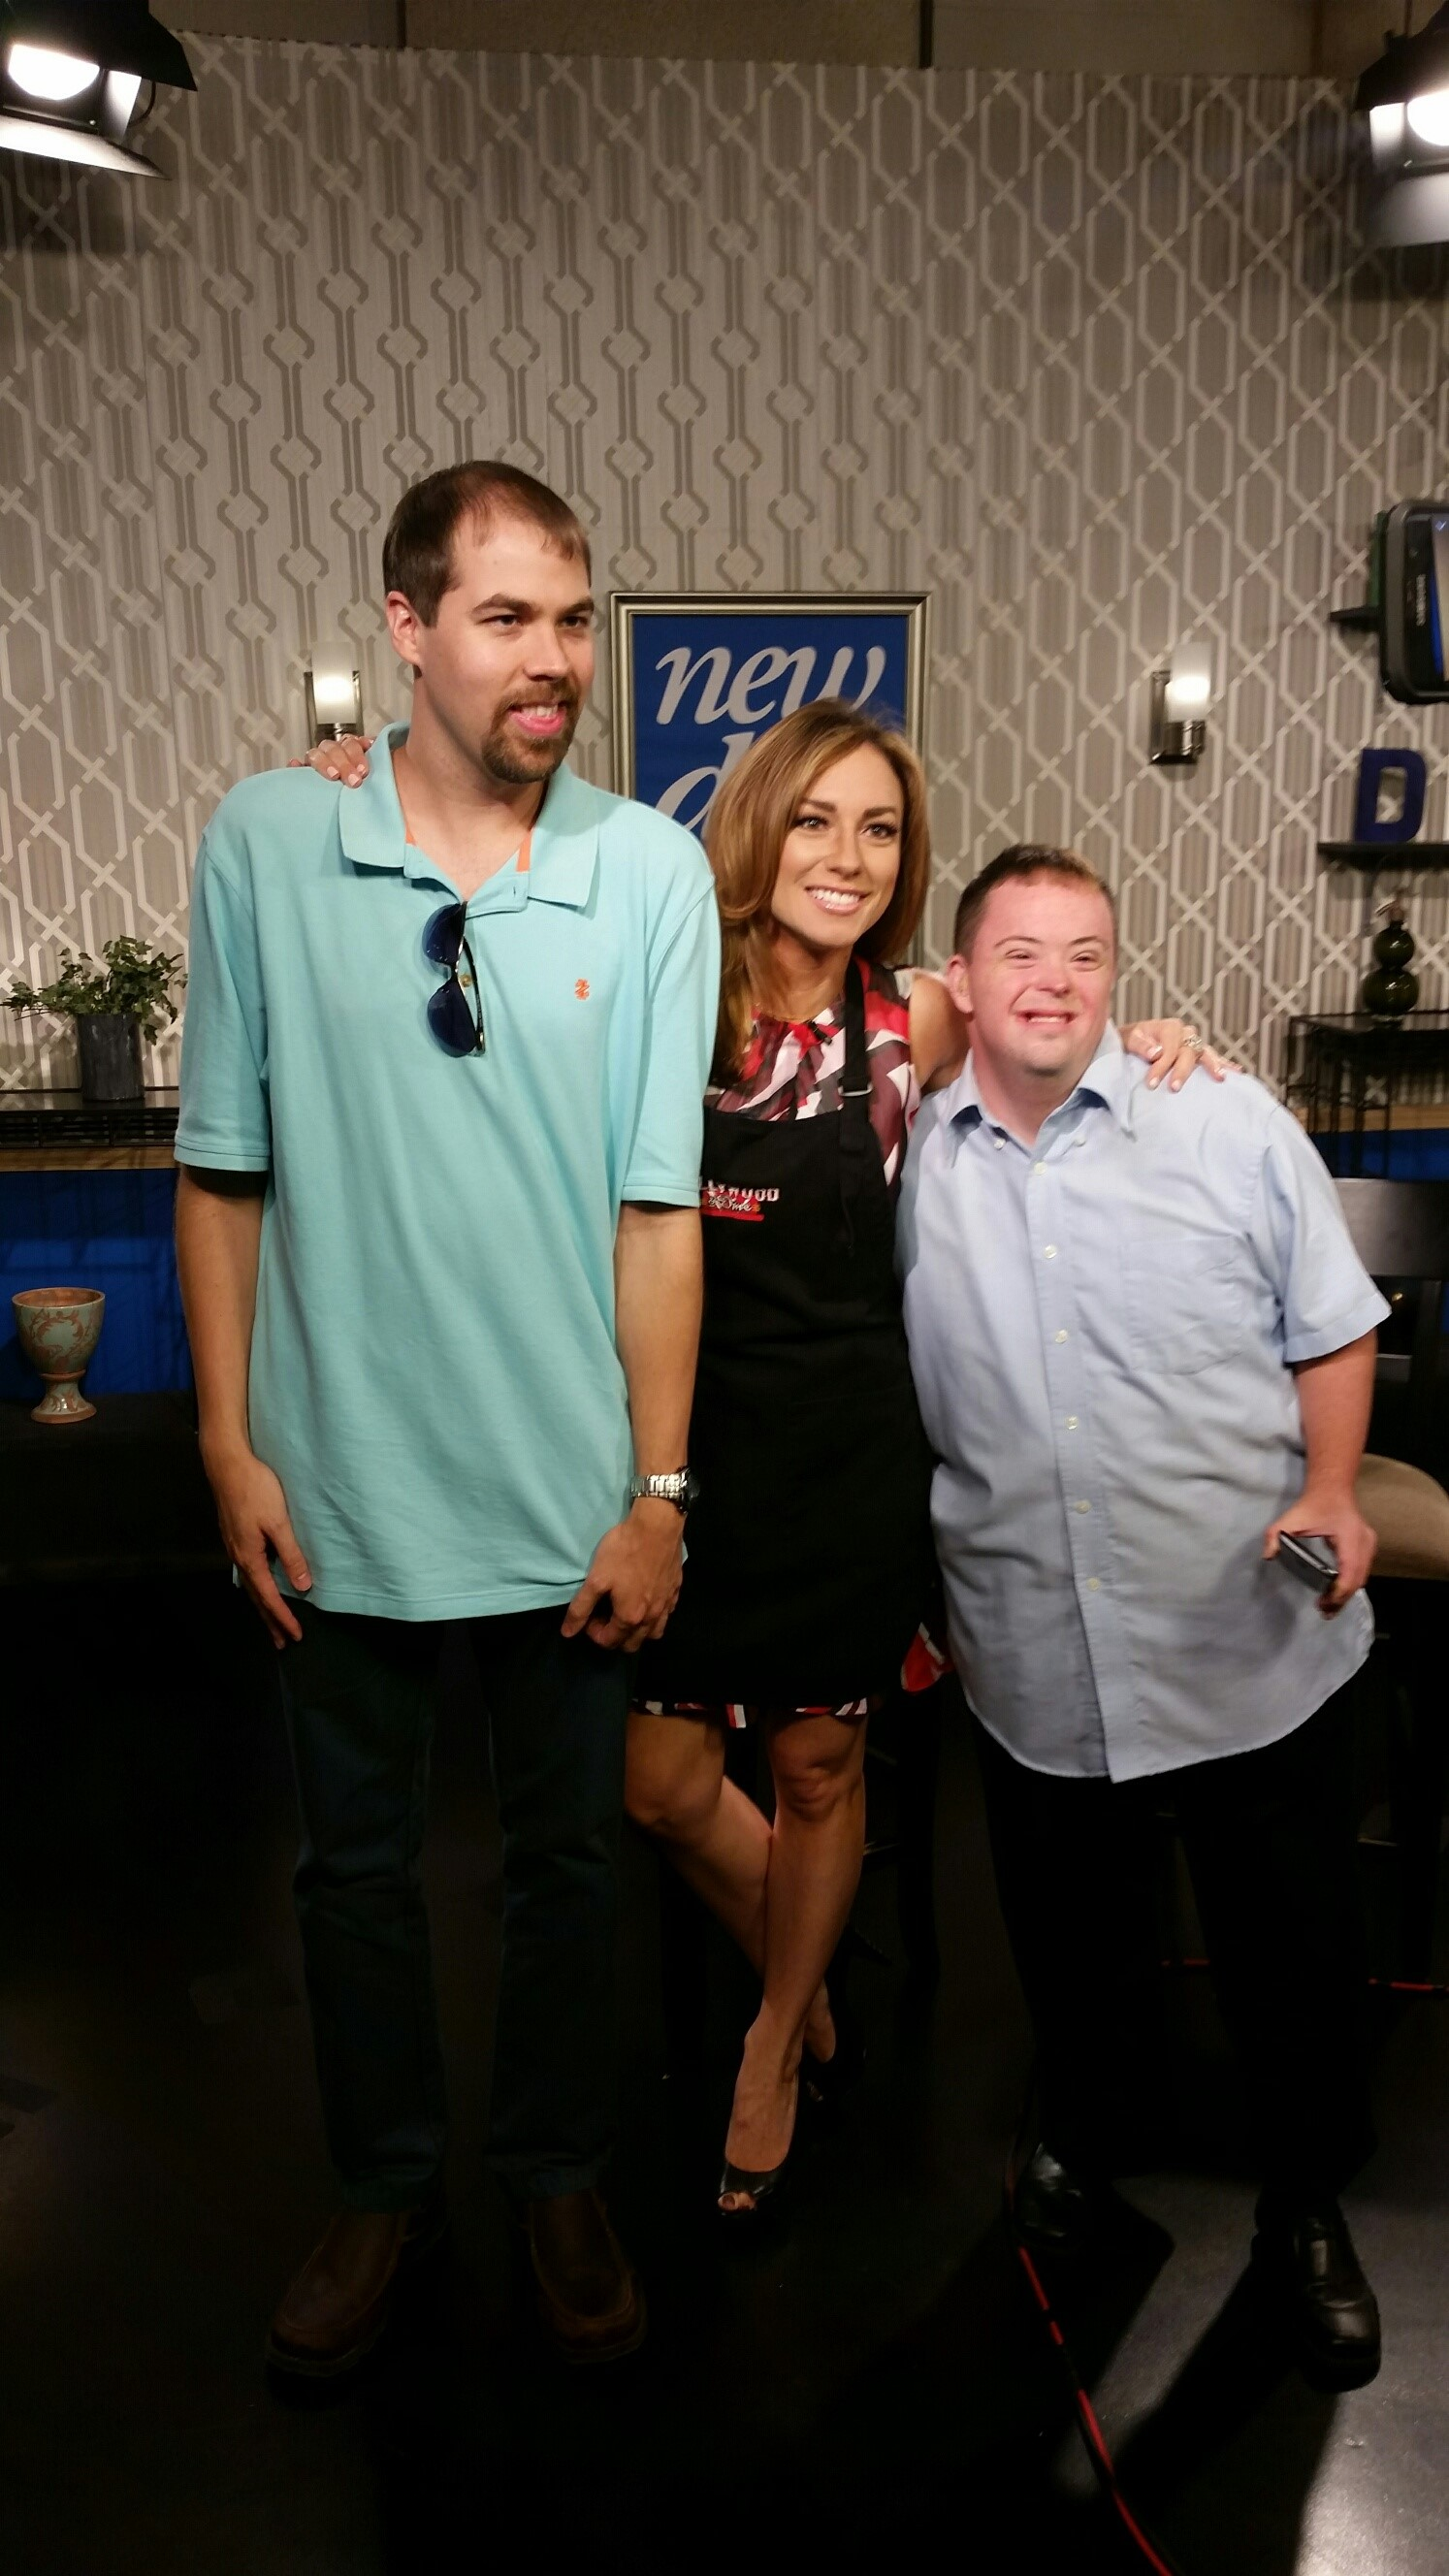 Al and Ray posing with Natalie from Good Day Cleveland